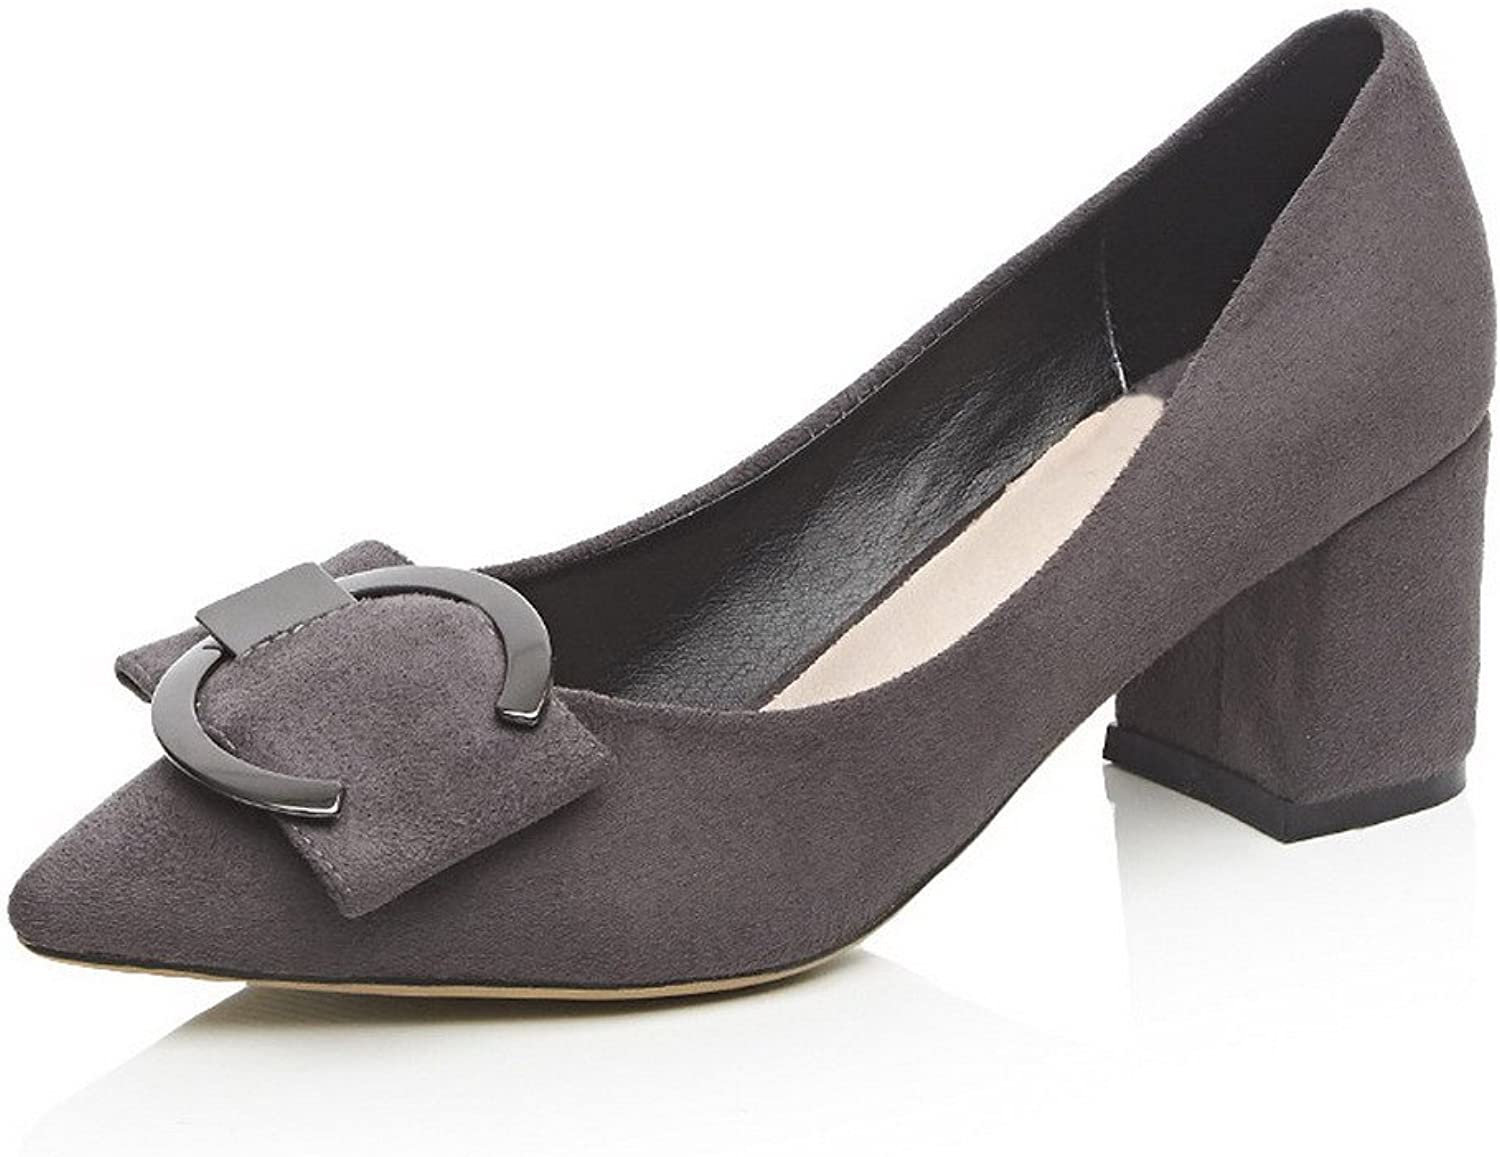 WeenFashion Women's Pull-on Pointed Closed Toe Kitten-Heels Imitated Suede Solid Pumps-shoes